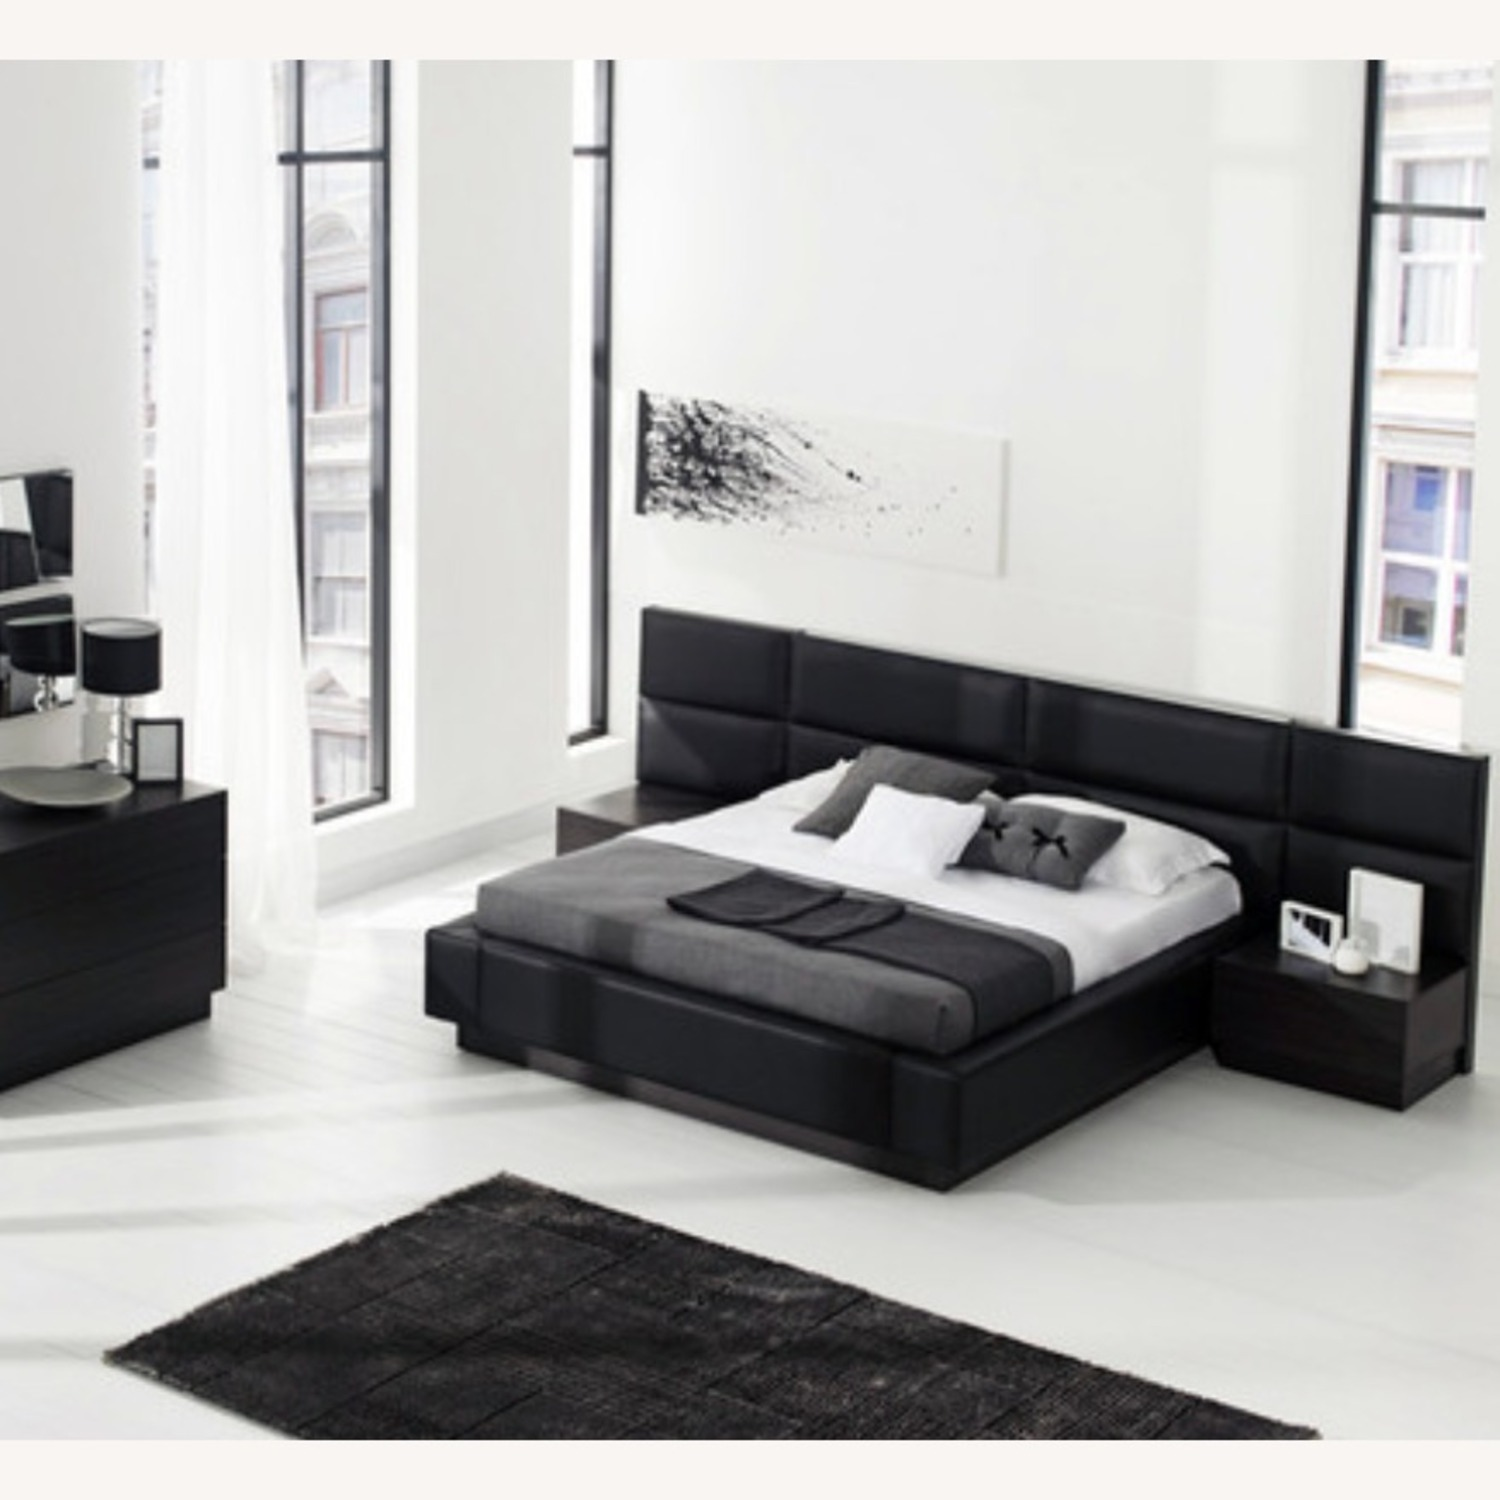 Lazzoni Queen Bed Storage and Led Lights - image-1